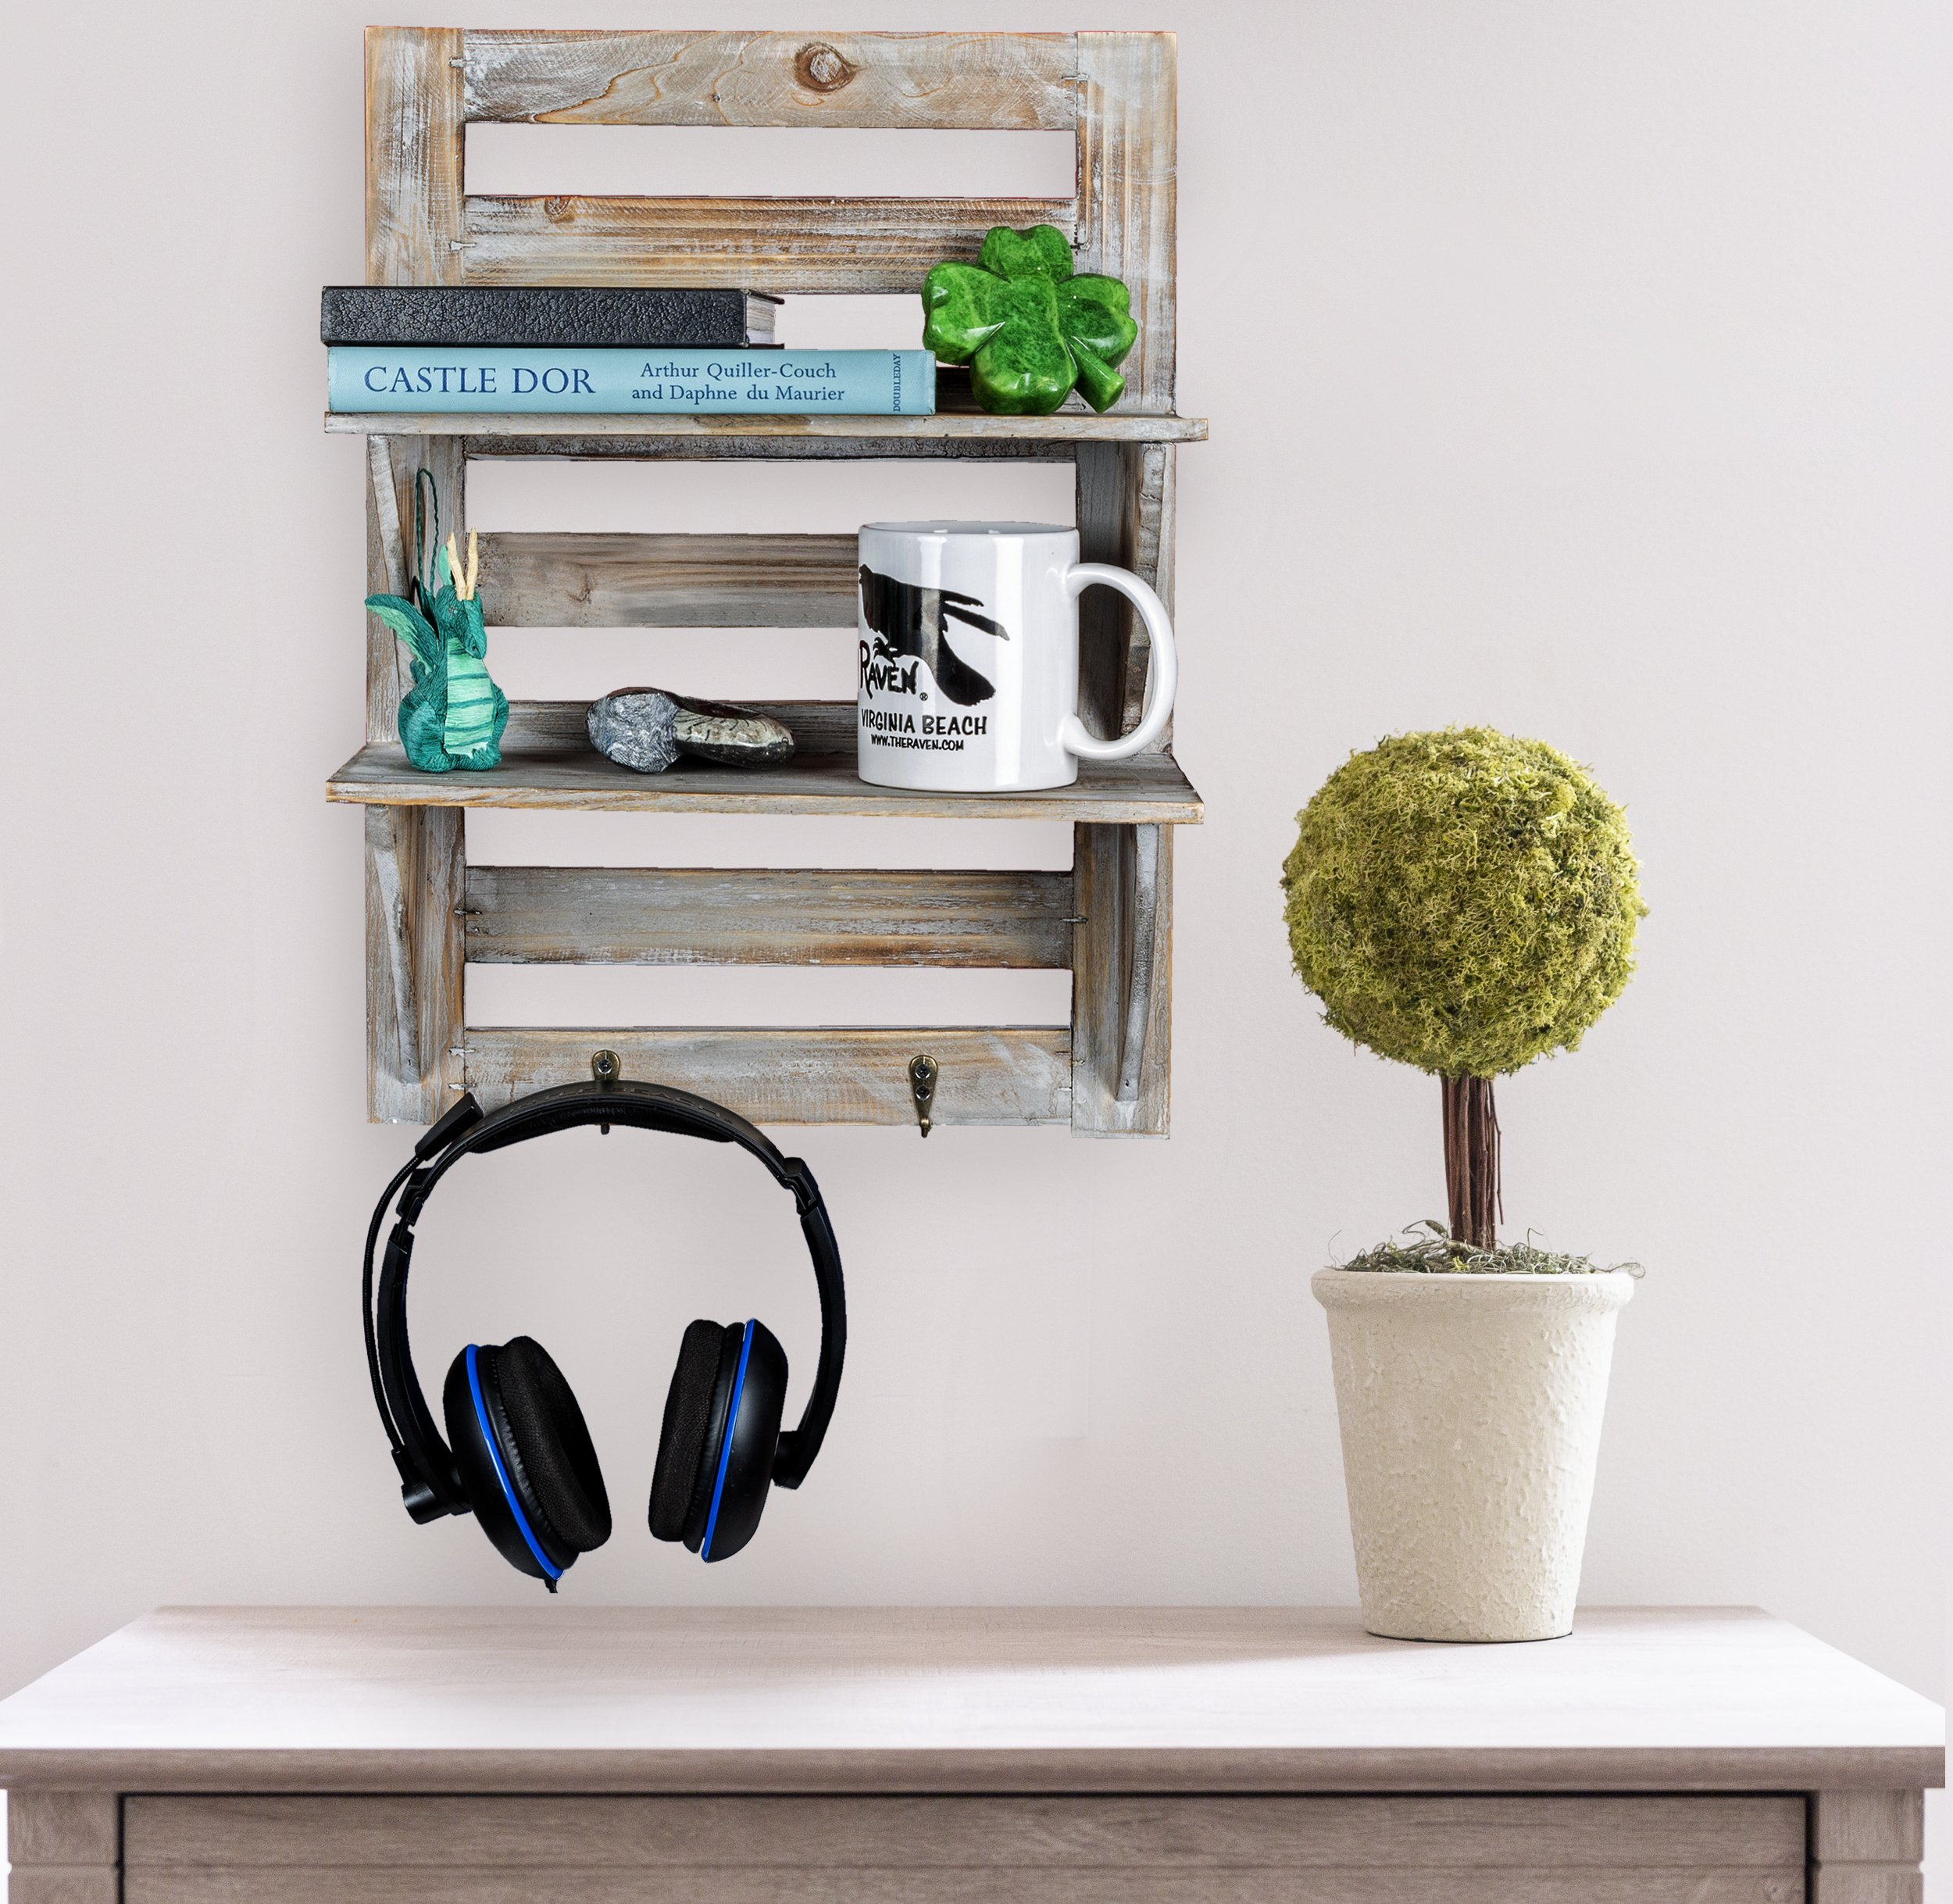 """Besti Rustic Wall Shelves w/Hanging Hooks - Dual Shelving Wall-Mounted Organizer - 2 Tier Storage Rack Brown - Cute Rustic Organizers - Home Decorative Furniture - Farmhouse Wall Shelving - Crafted with natural wood, our shelves feature two shelf levels for displaying pictures, small flower pots, bedroom decor, or cute decorations. Rustic, Vintage Home Style - Ideal for decorating your living room, kitchen, bathroom, or personal space, they match your other furniture or furniture perfectly. Natural Wood Craftsmanship - This wooden wall-mounted organizer is made with high-quality wood, wide shelves, and is an easy-to-hang size at 17.5"""" x 12.5"""" x 5.5"""". - wall-shelves, living-room-furniture, living-room - 91MwFB3R6vL -"""